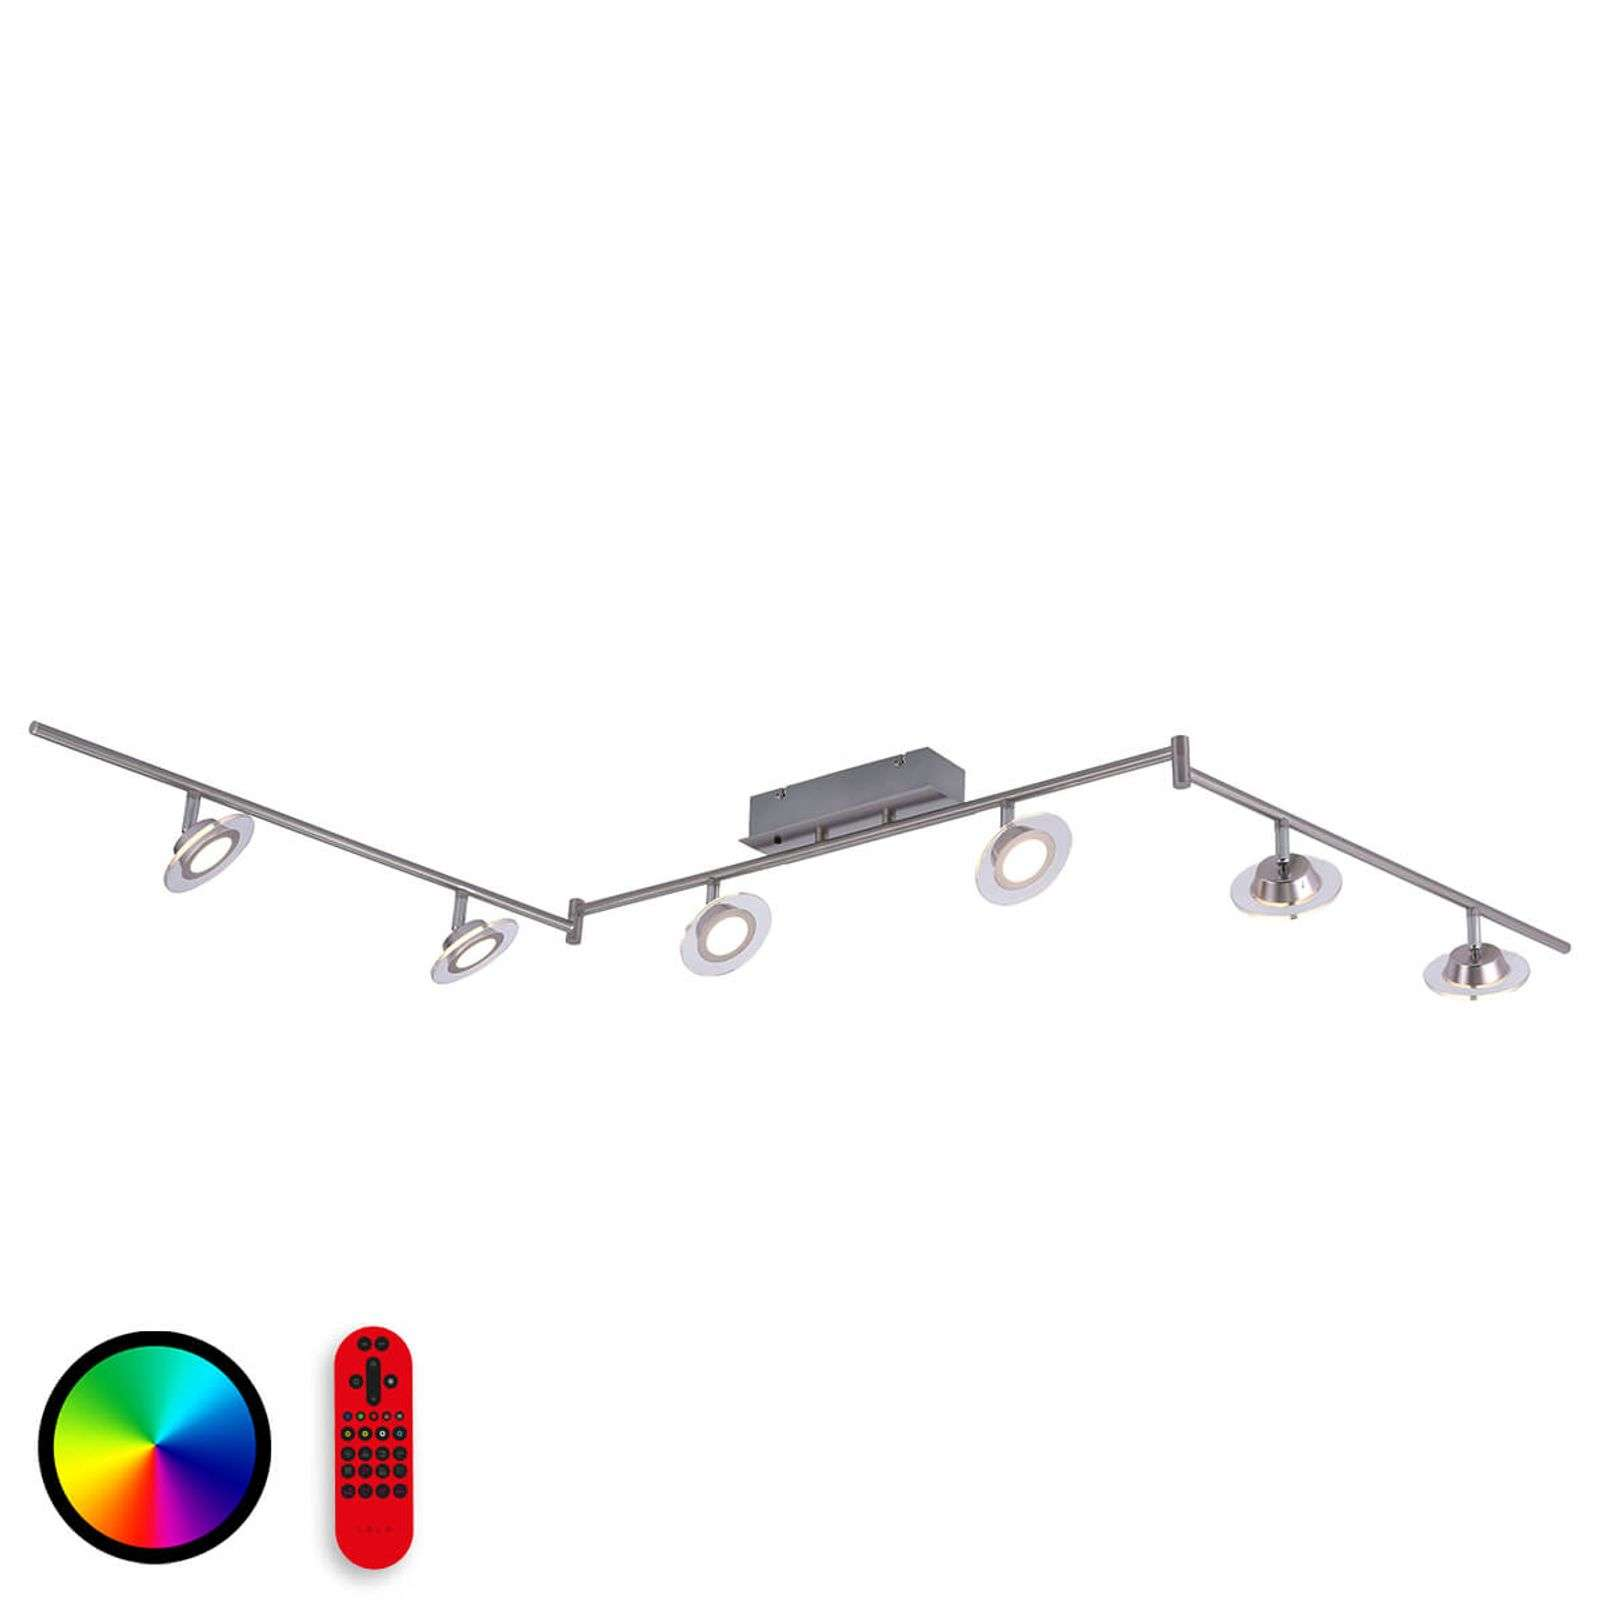 Functionele LED plafondlamp Lola Mike, 6 lamps